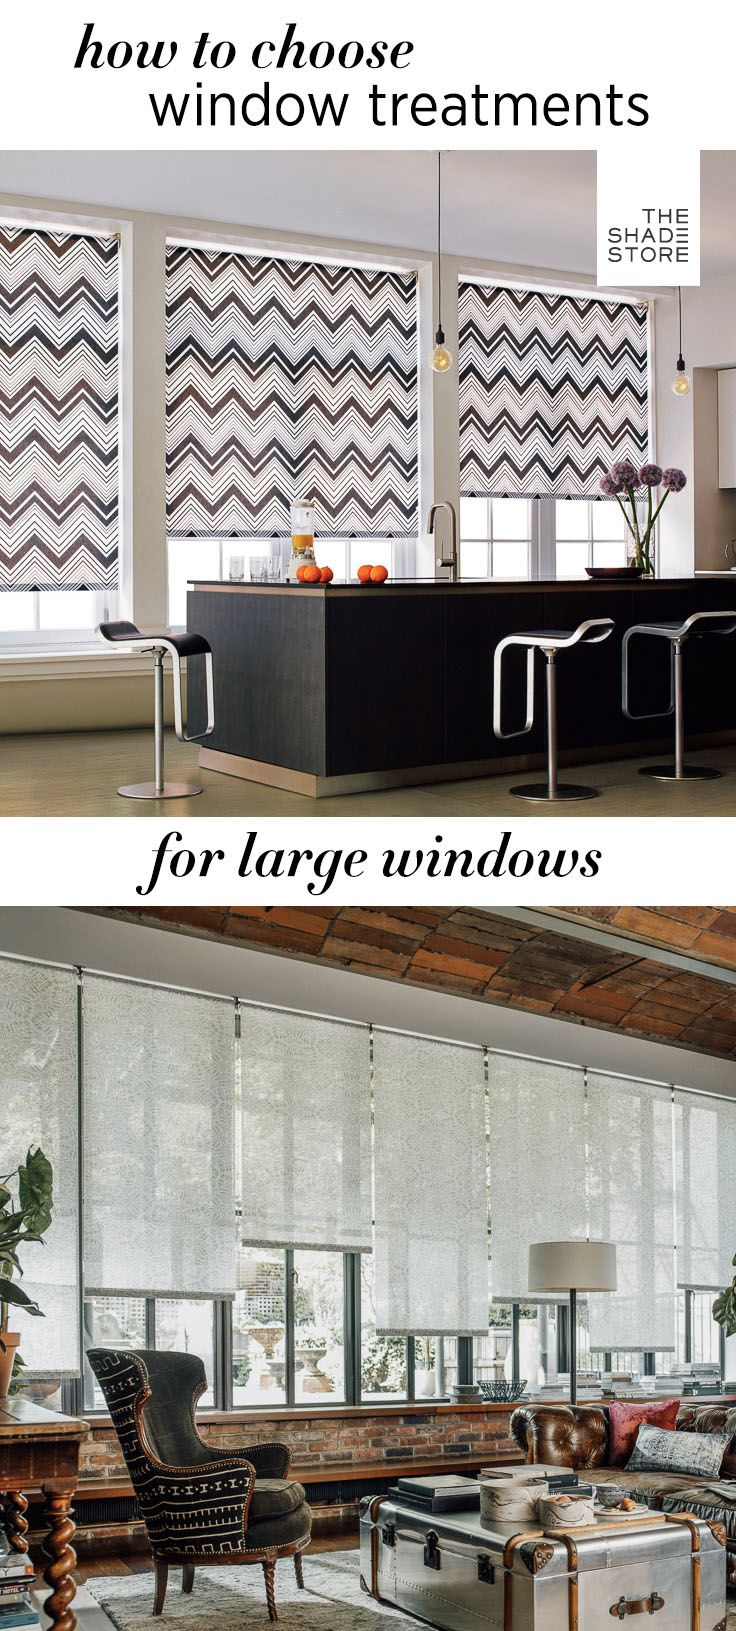 House window shade design  window treatments for large windows  solar shades solar and window